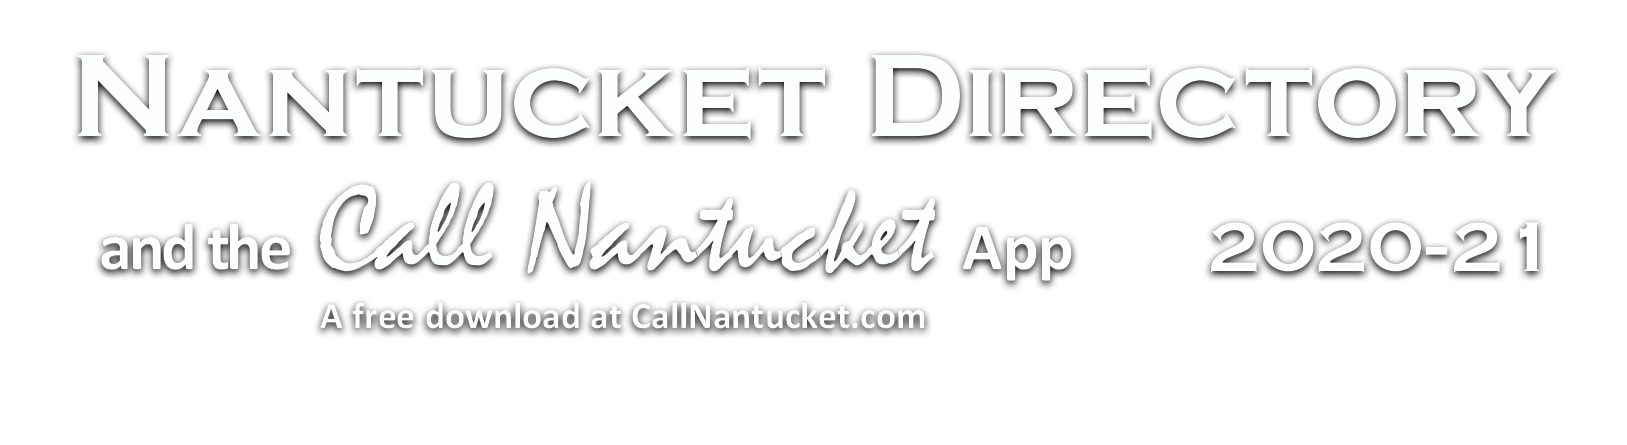 Nantucket Directory and the Call Nantucket App